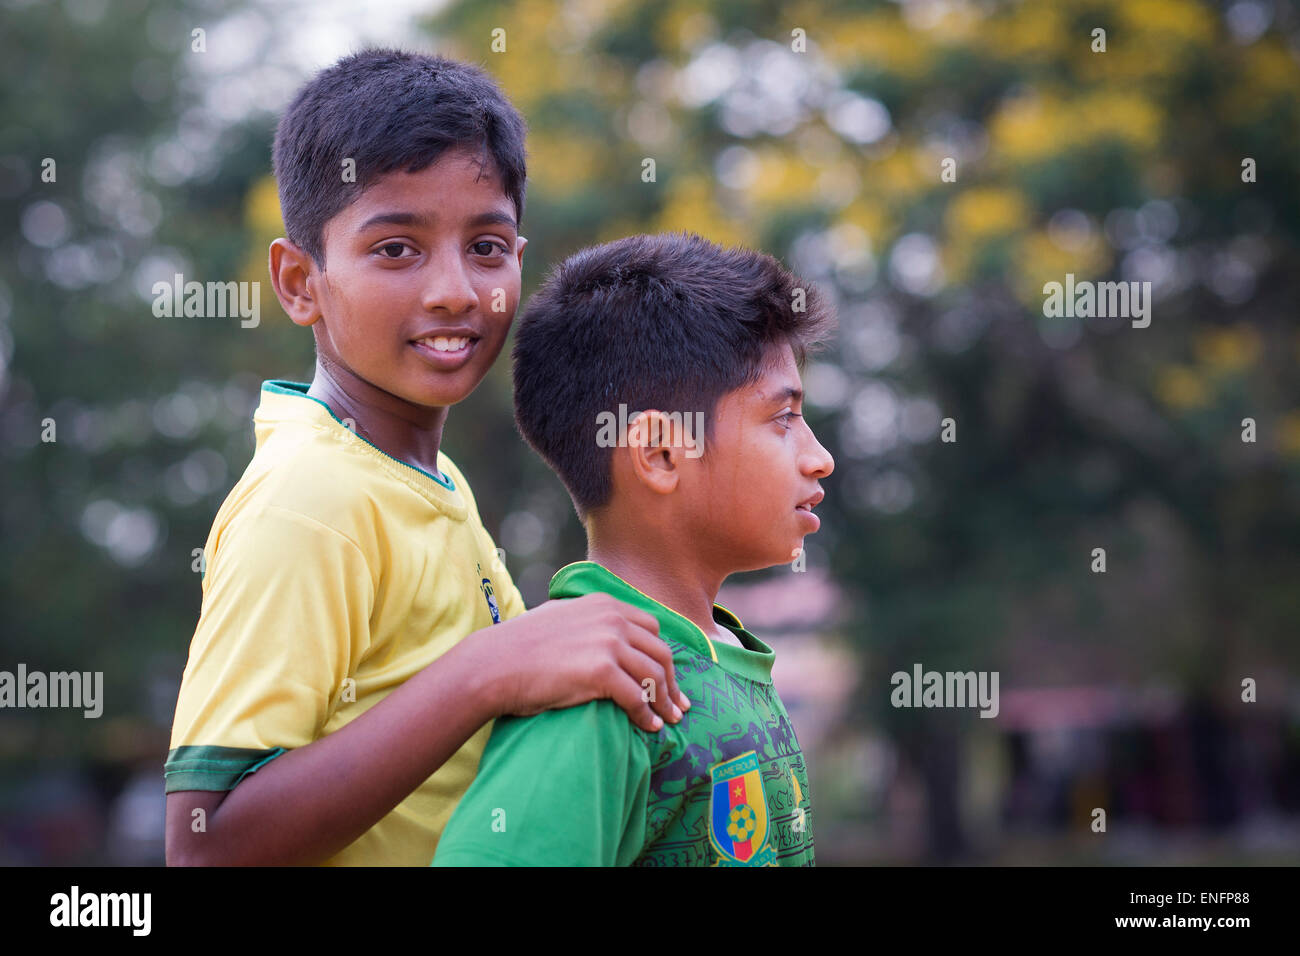 Two boys during a short break at a football game, Parade Ground, Fort Cochin, Kochi, Kerala, India - Stock Image